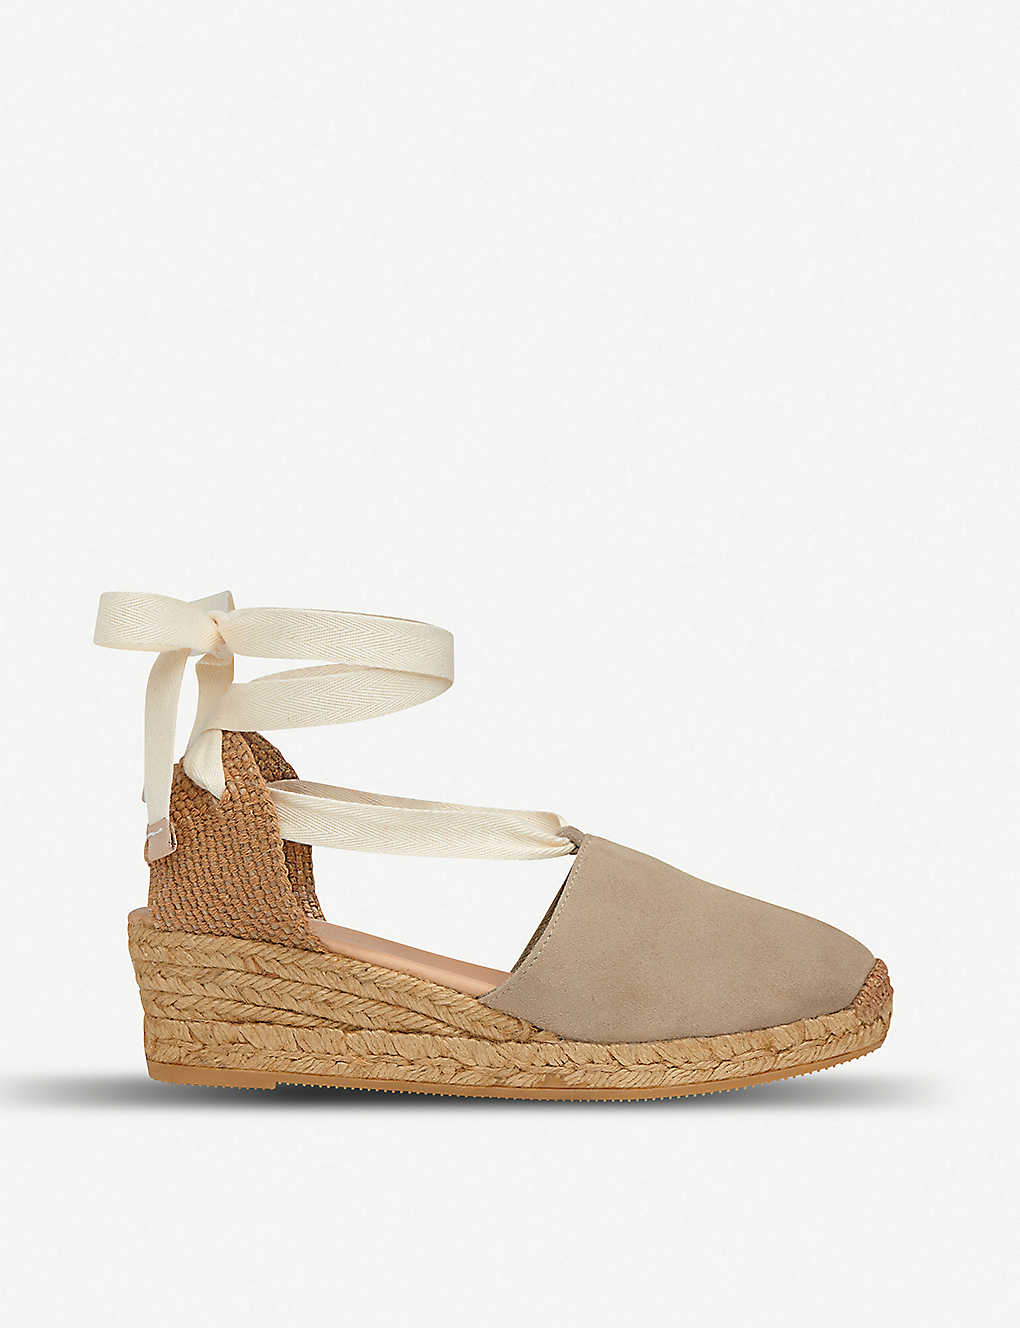 111513eb124 Mable suede wedge espadrilles